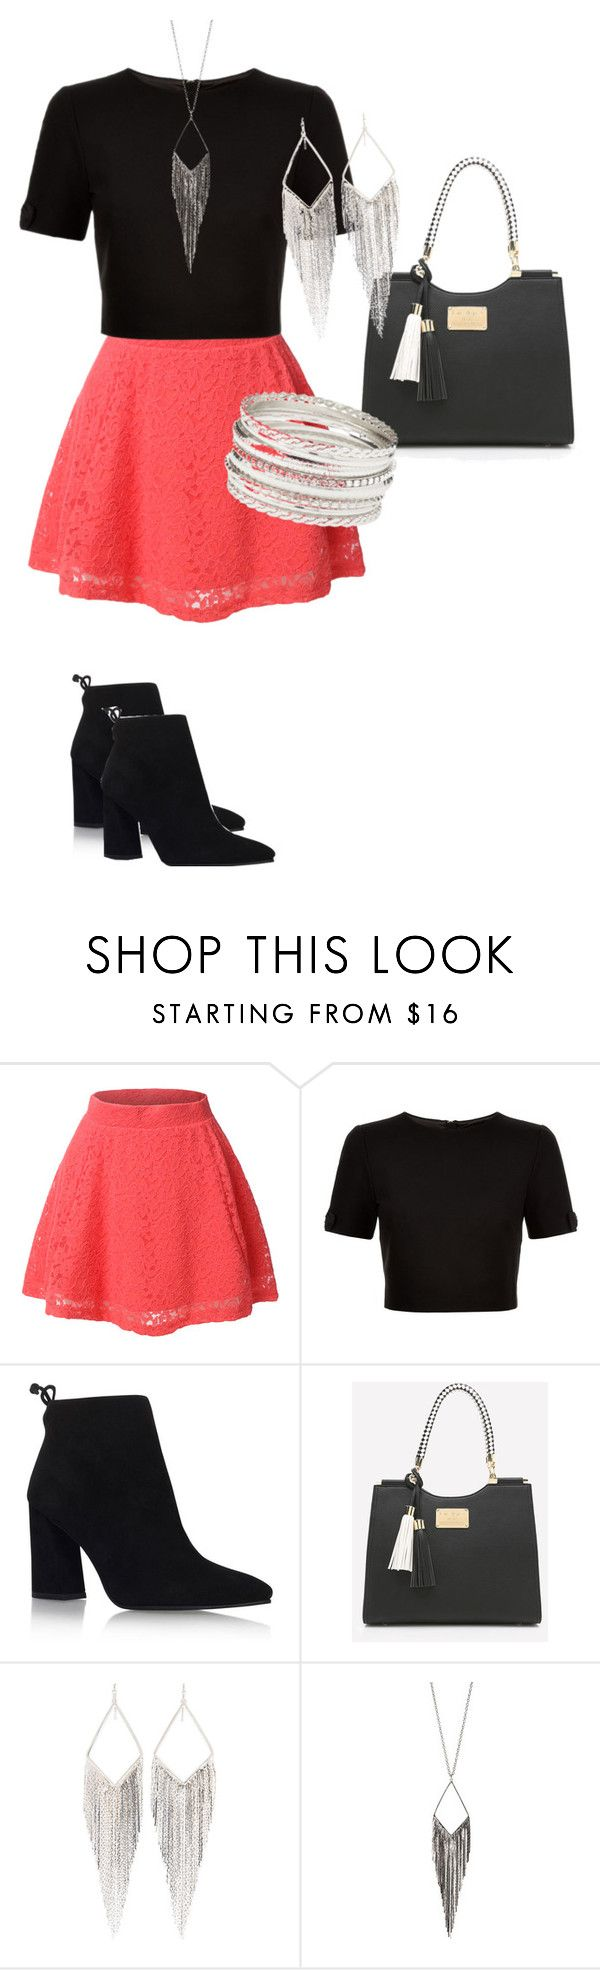 """""""Dress"""" by emy-belle on Polyvore featuring mode, LE3NO, Ted Baker, Stuart Weitzman, Jules Smith et Charlotte Russe"""